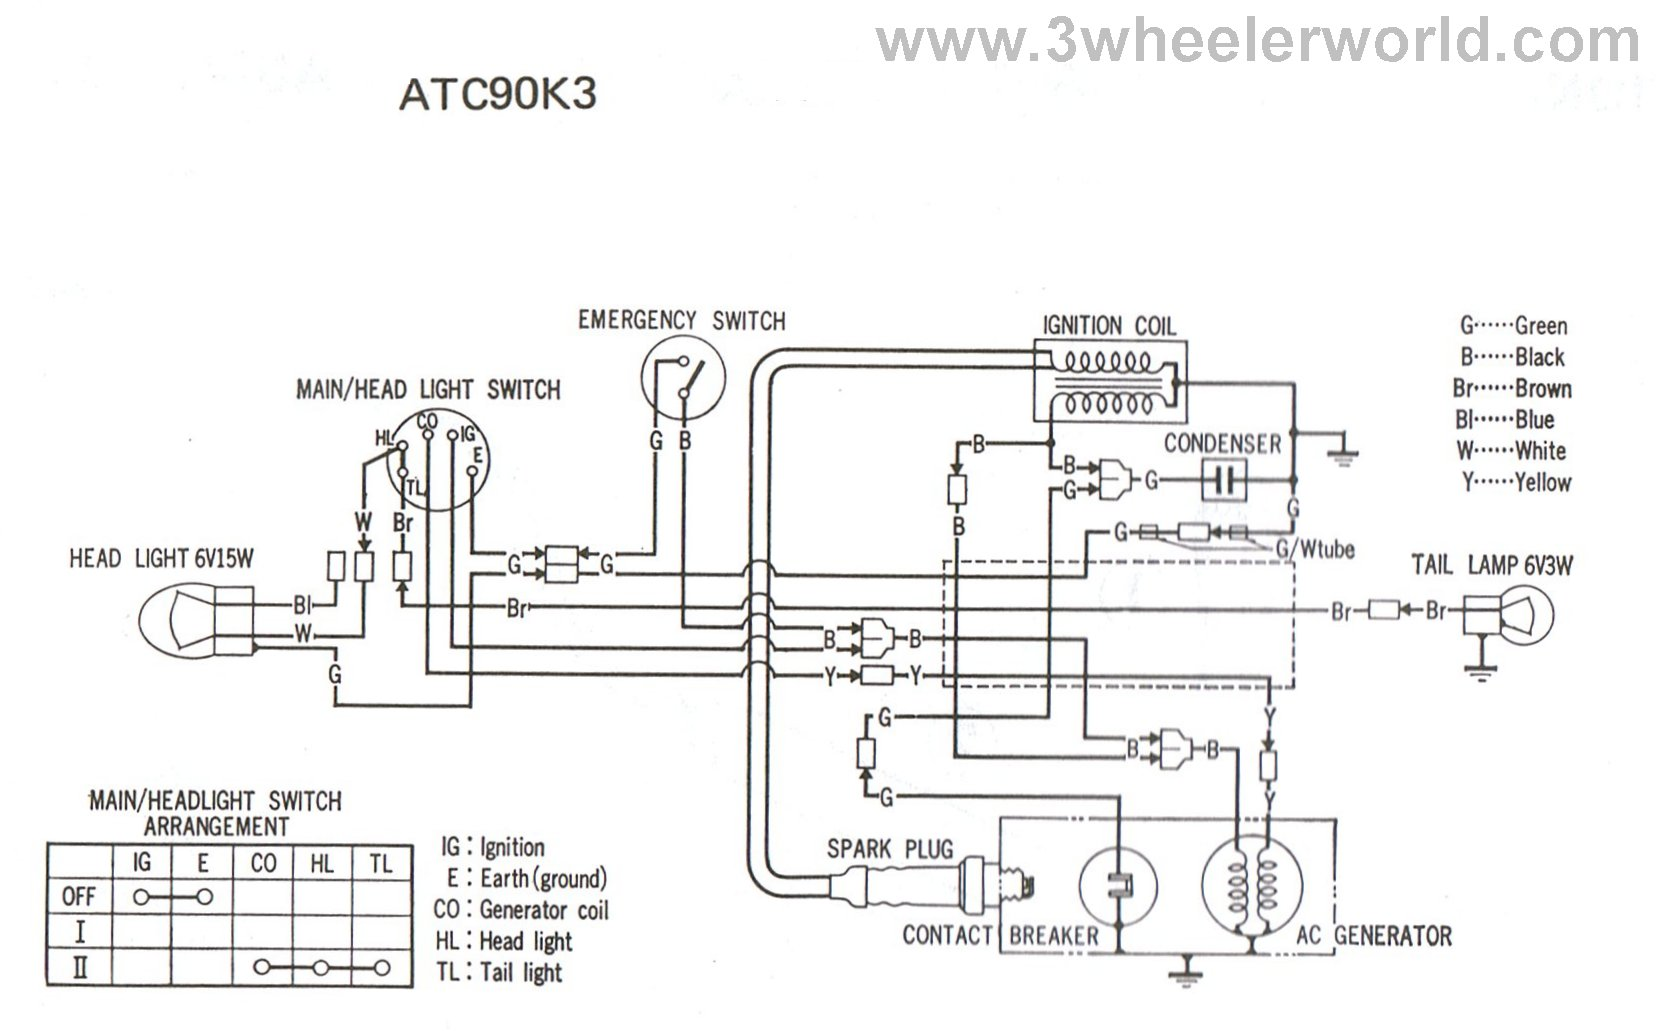 1968 Ct90 Wiring Diagram Electrical Diagrams Honda Cb Trusted U2022 Rh 149 28 242 213 Cb750 Chopper 1972 Nova In Color